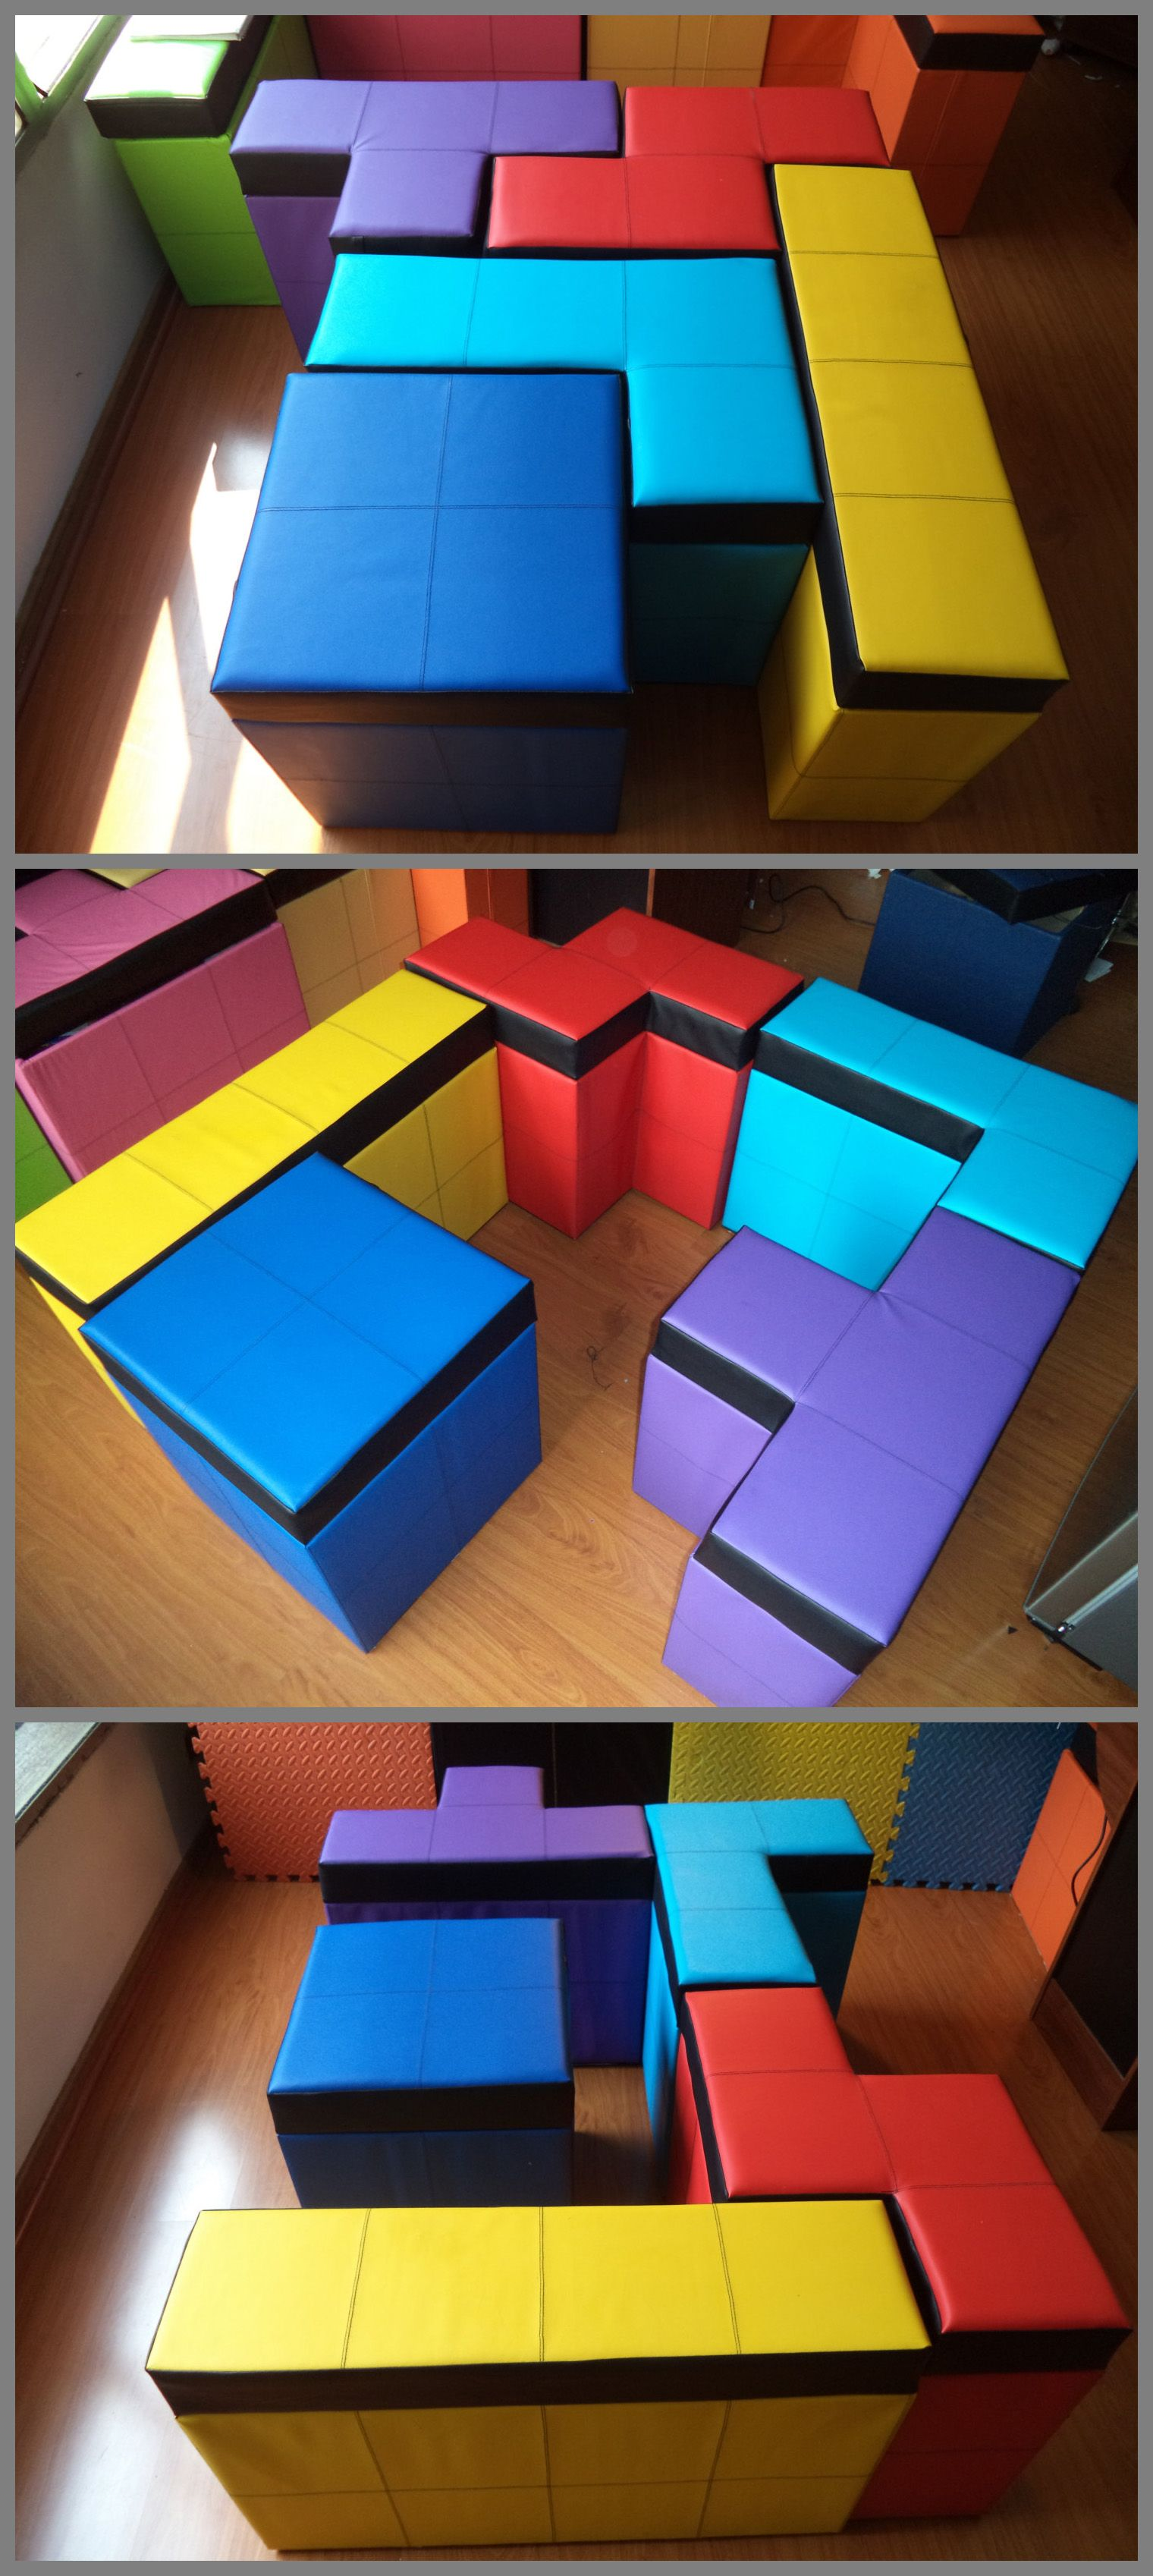 Set Of 5 Pieces Of Tetris Shaped Storage Benches By Cromaleon